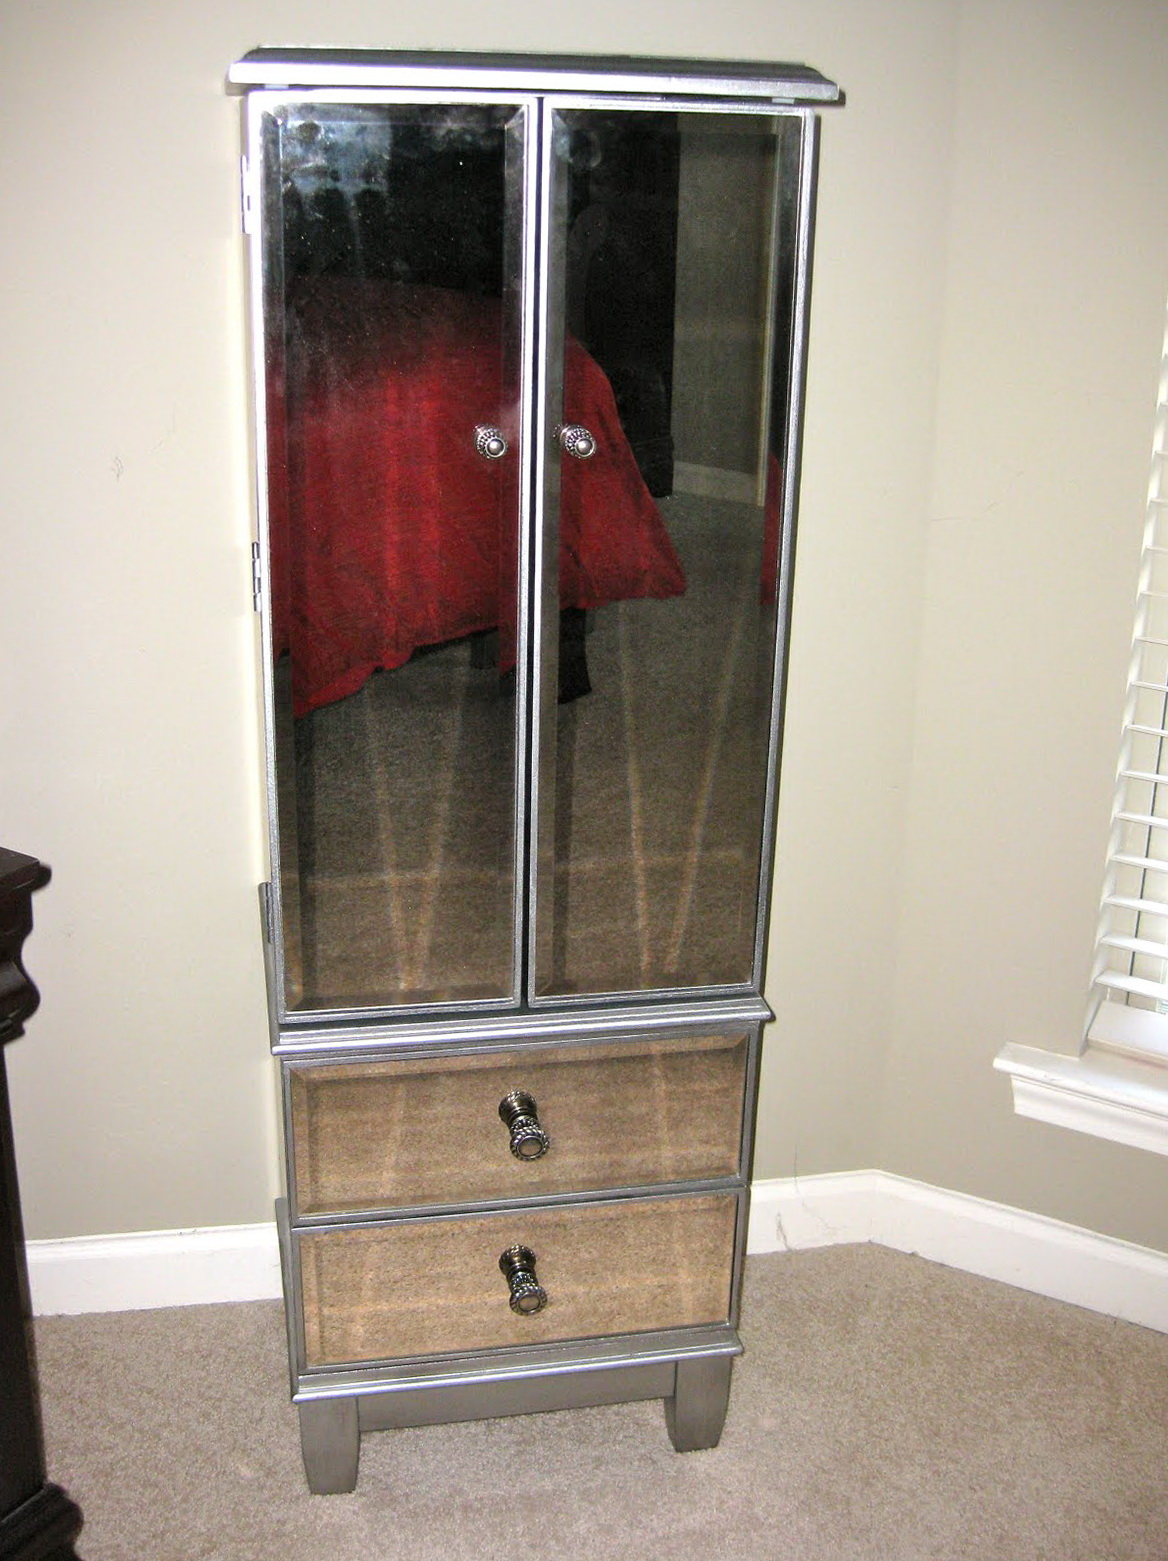 pier 1 mirrored bedroom furniture photo - 1